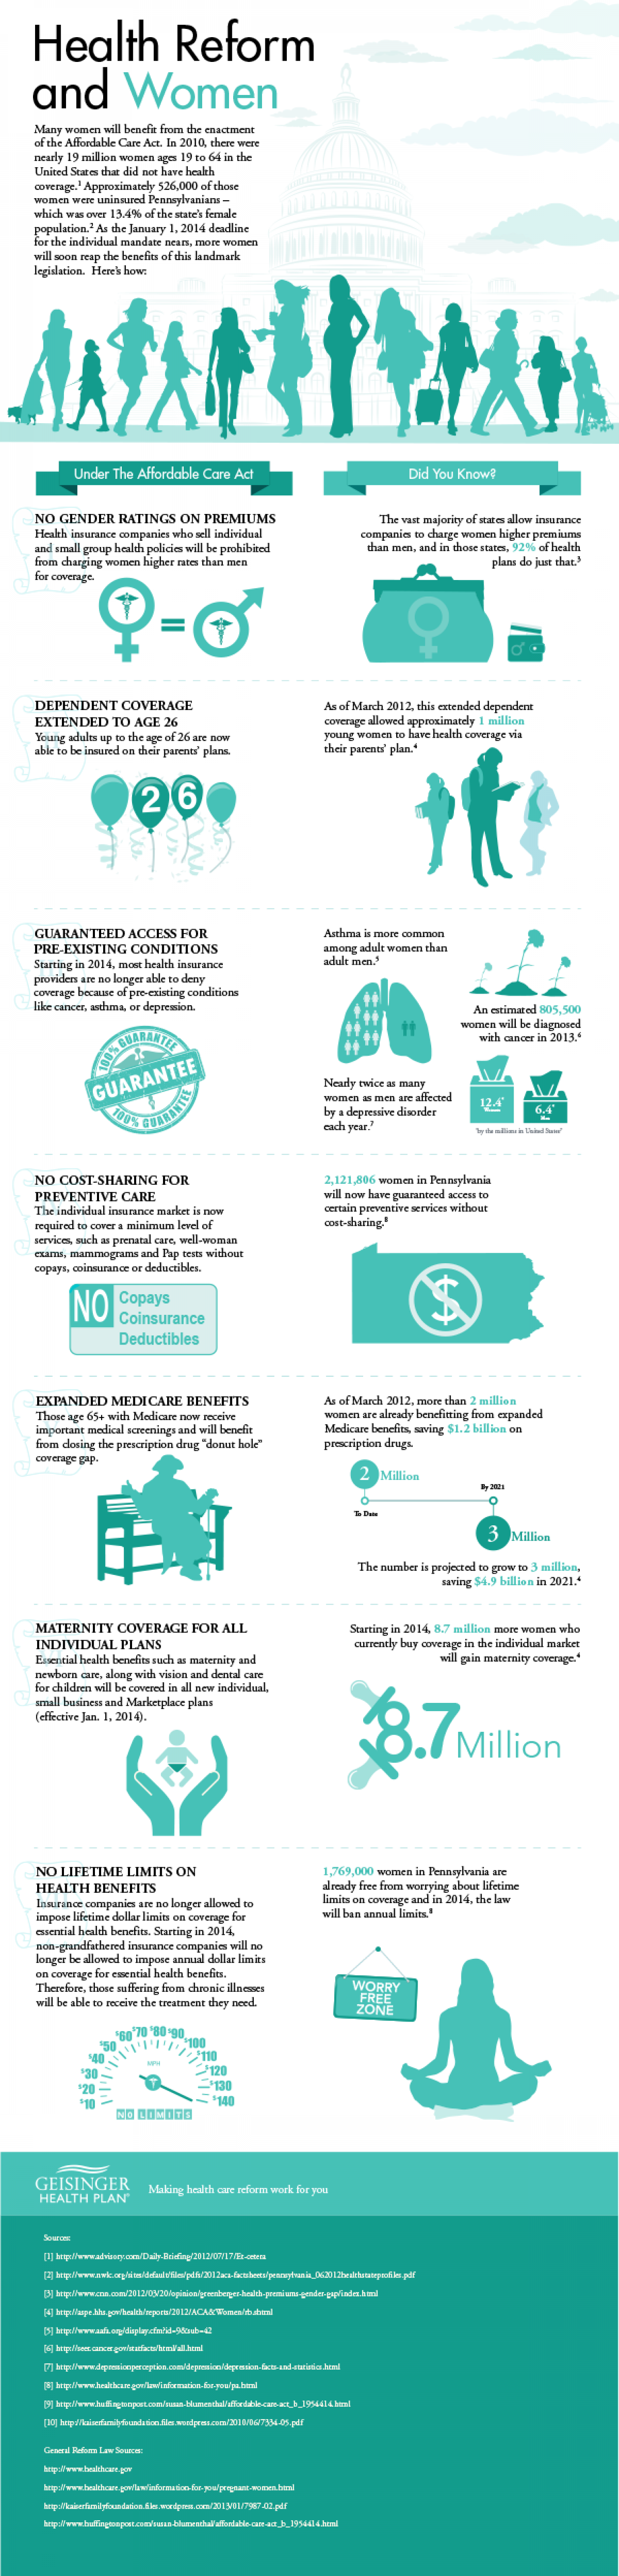 Health Reform and Women Infographic